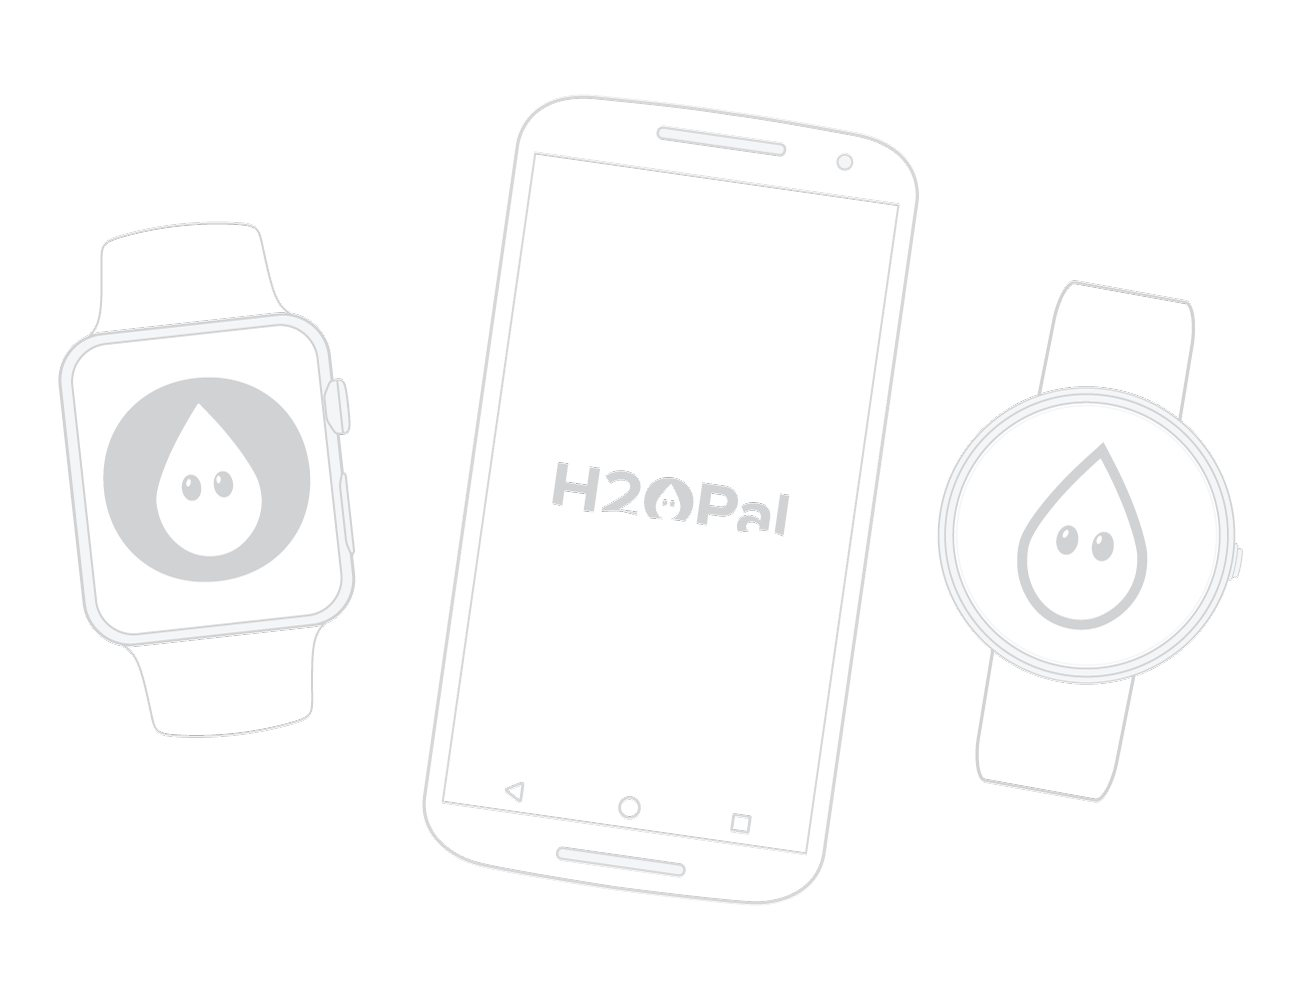 h2o-pal-hydration-tracker-04